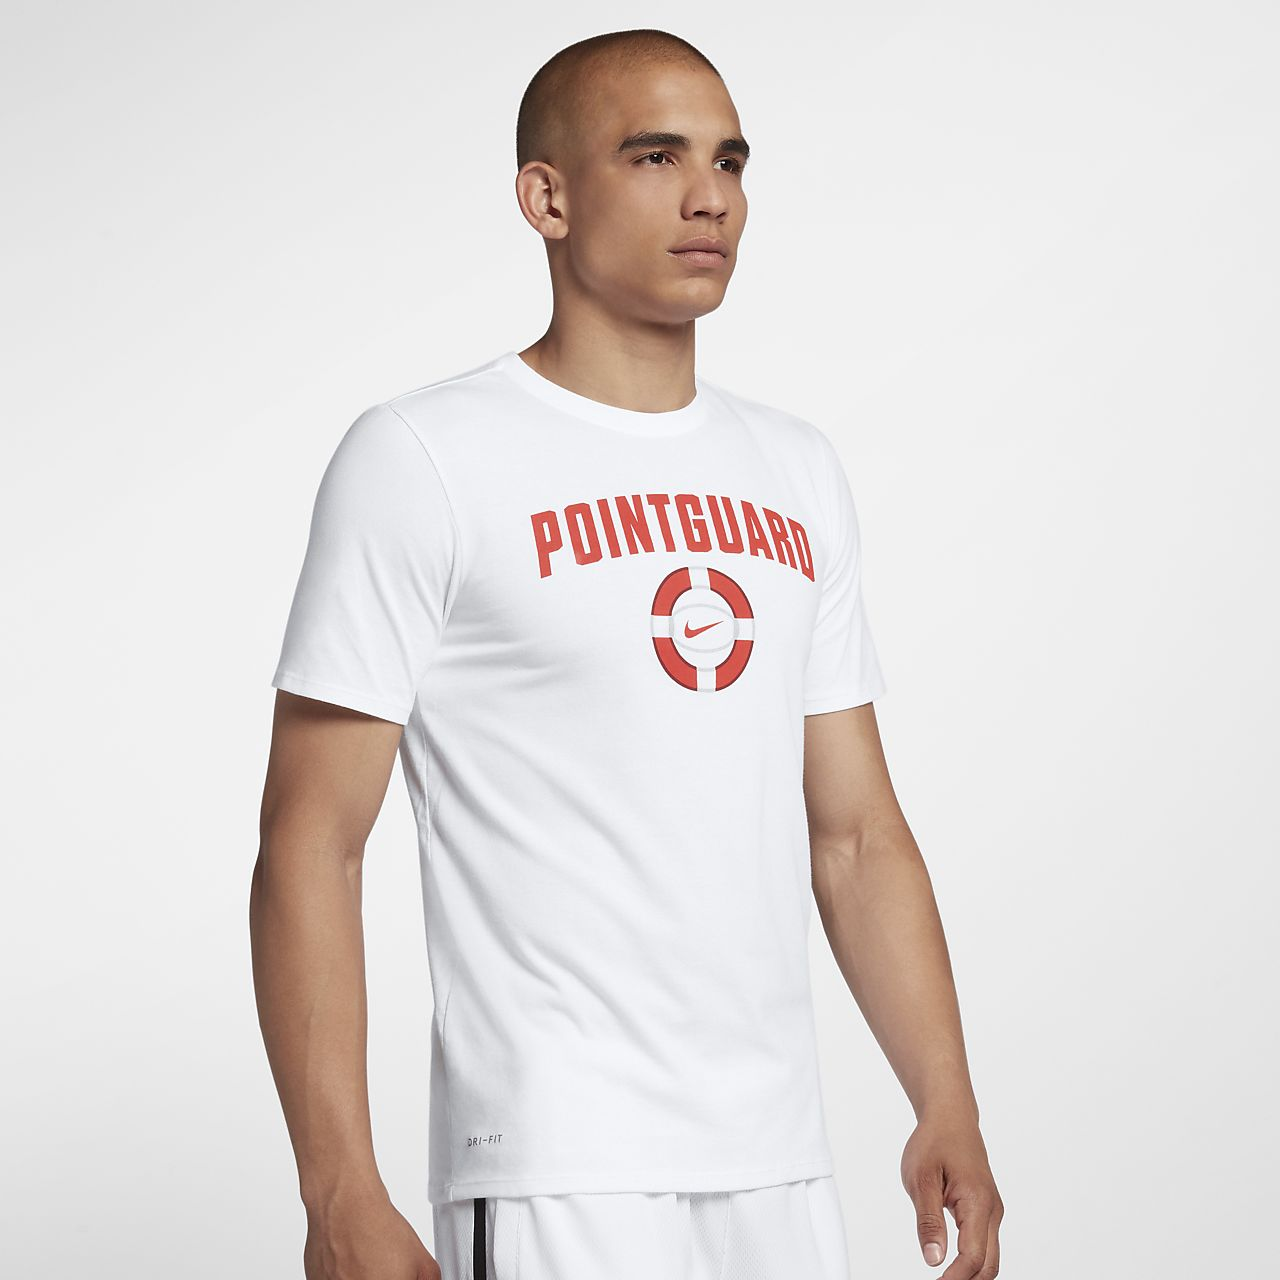 Fit Homme Dri Pour Tee Be Nike Shirt Basketball De 4qXf0Z